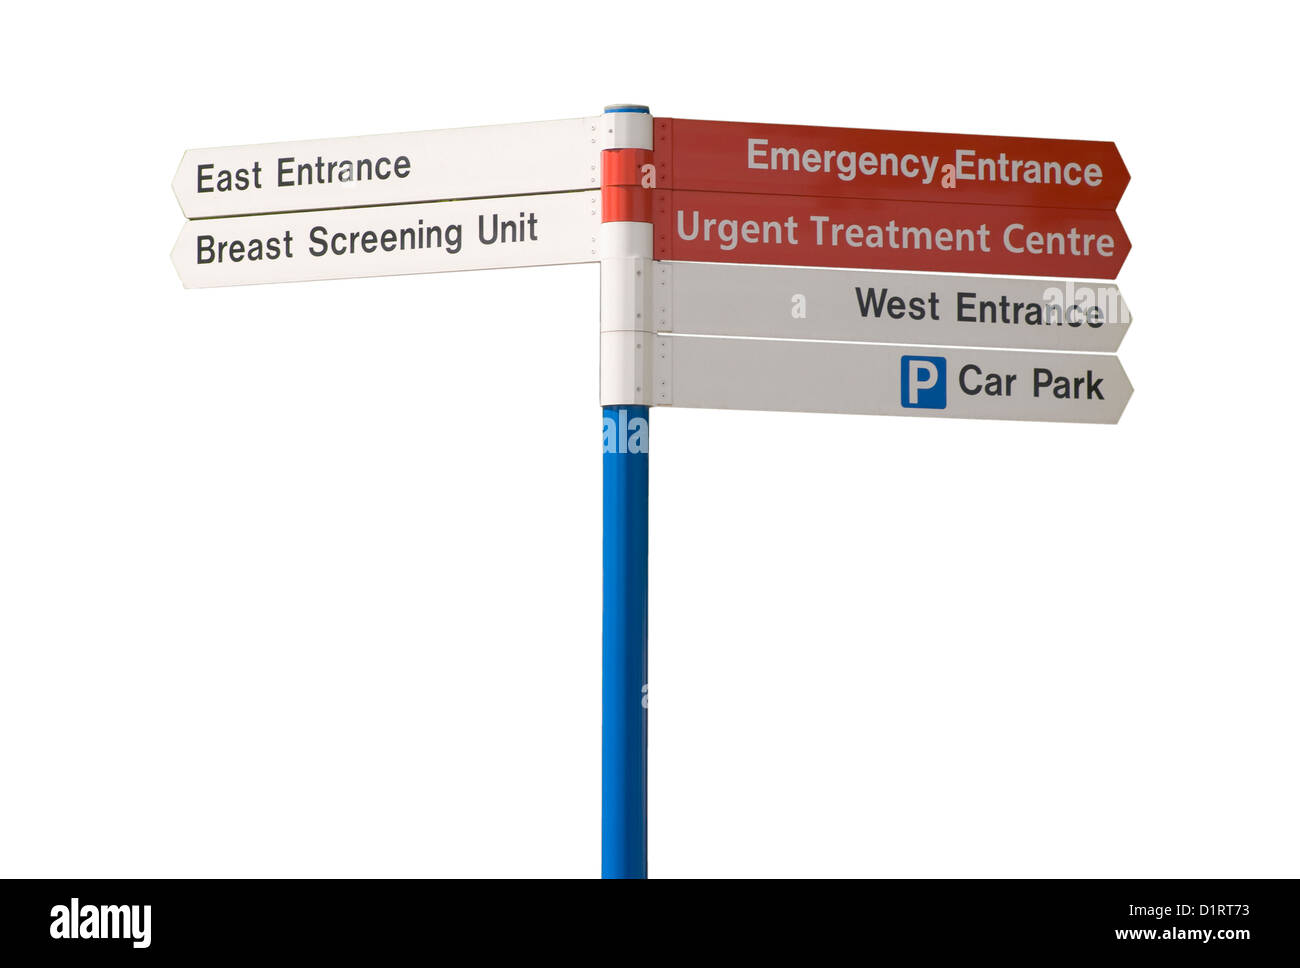 Hospital Information and Directions Sign - Stock Image